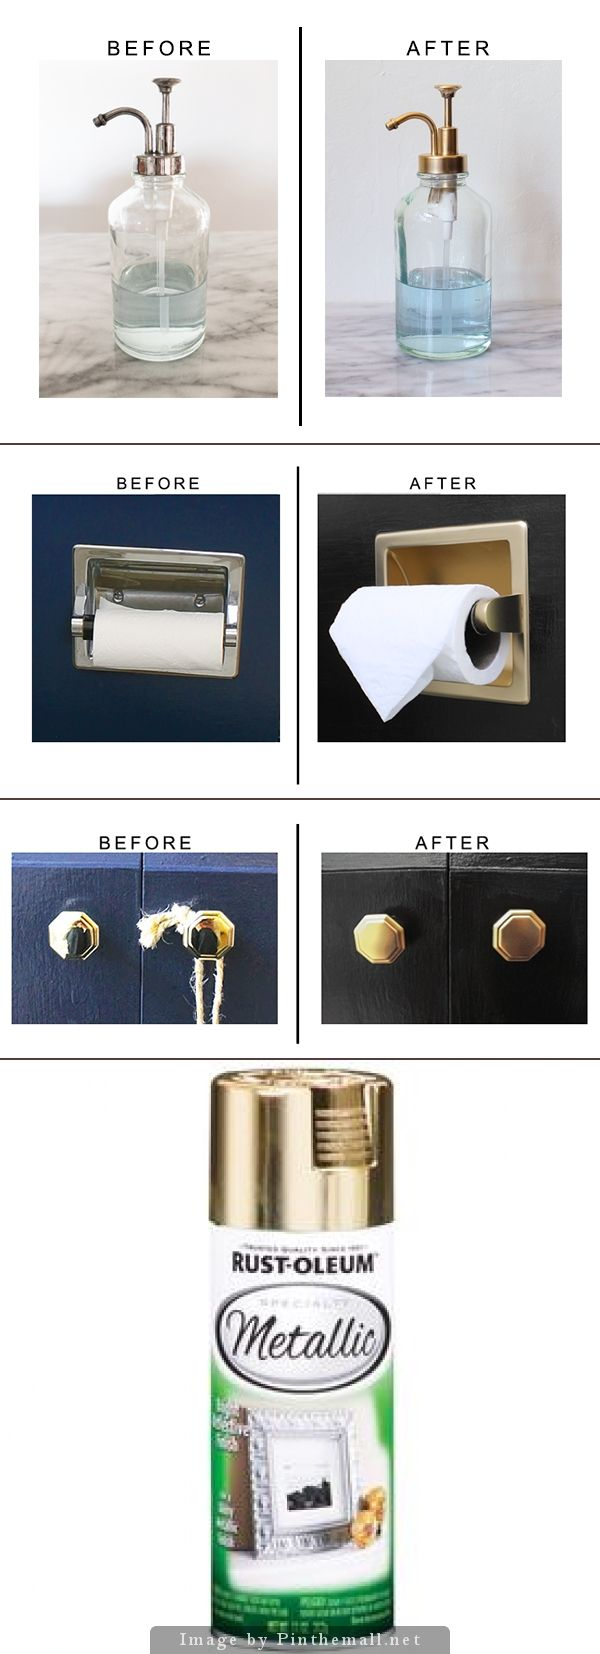 Designer updated bathroom accessories using  Rust-Oleum 11-oz Metallic Gold Spray Paint for a soft brass rather than bright shiny brass.